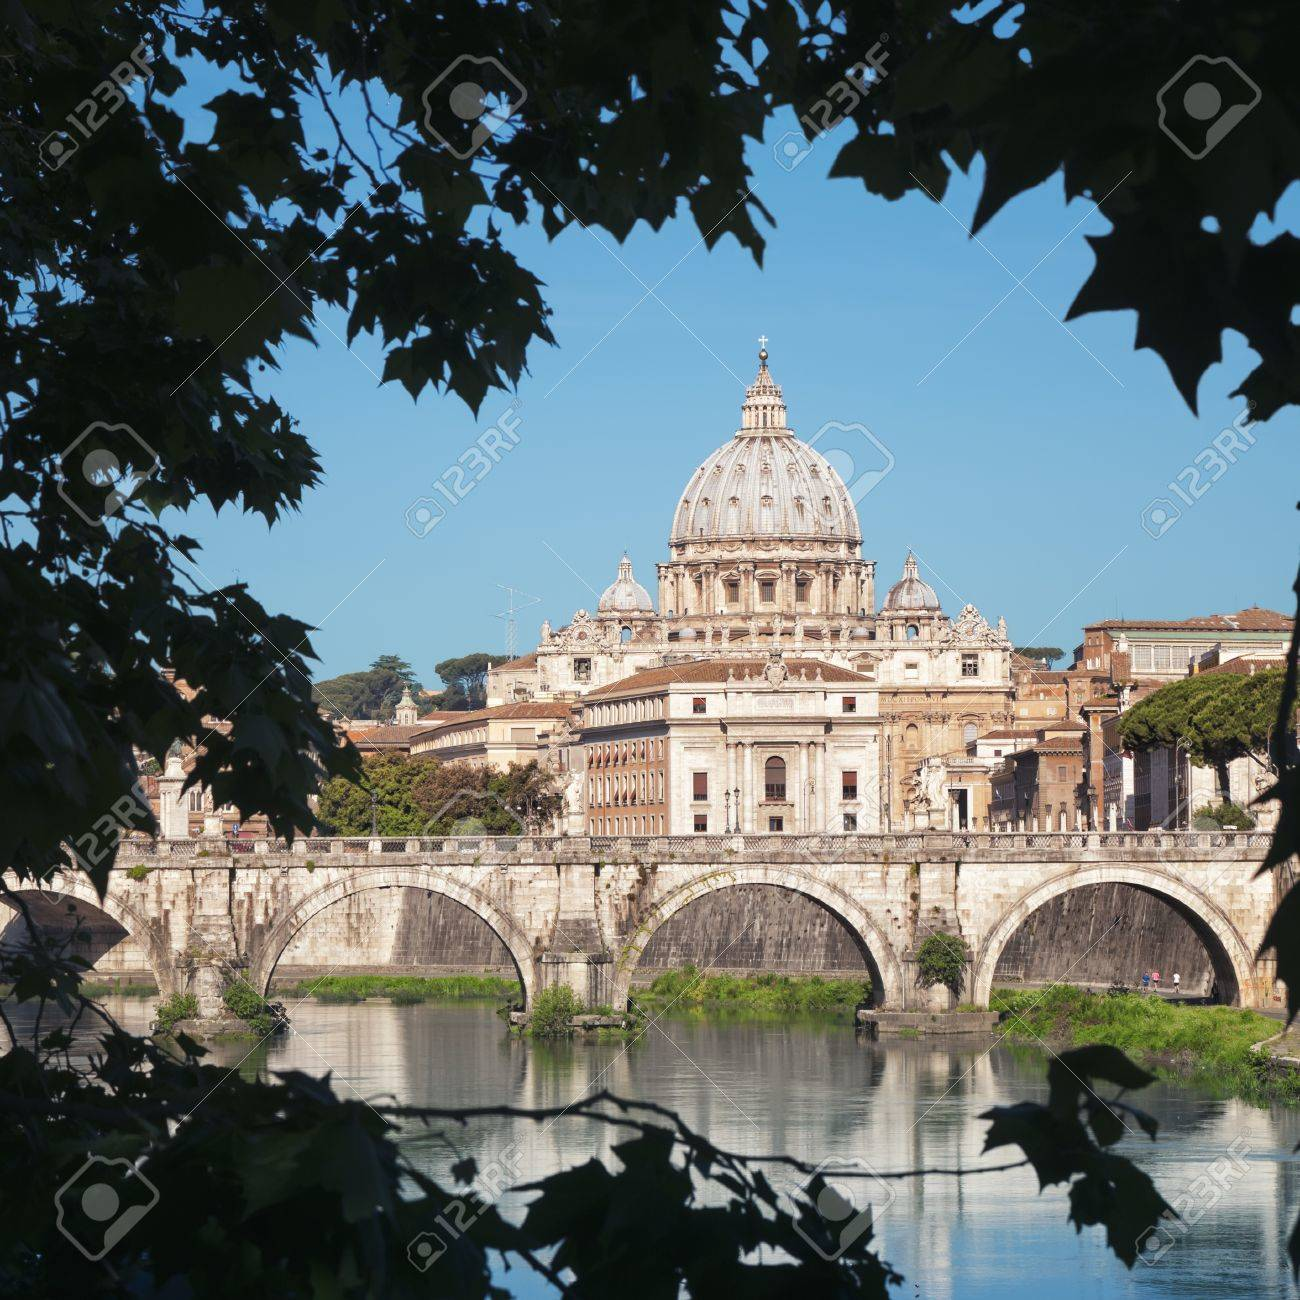 St  Peter s Basilica, Rome - Italy  Stock Photo - 13998749